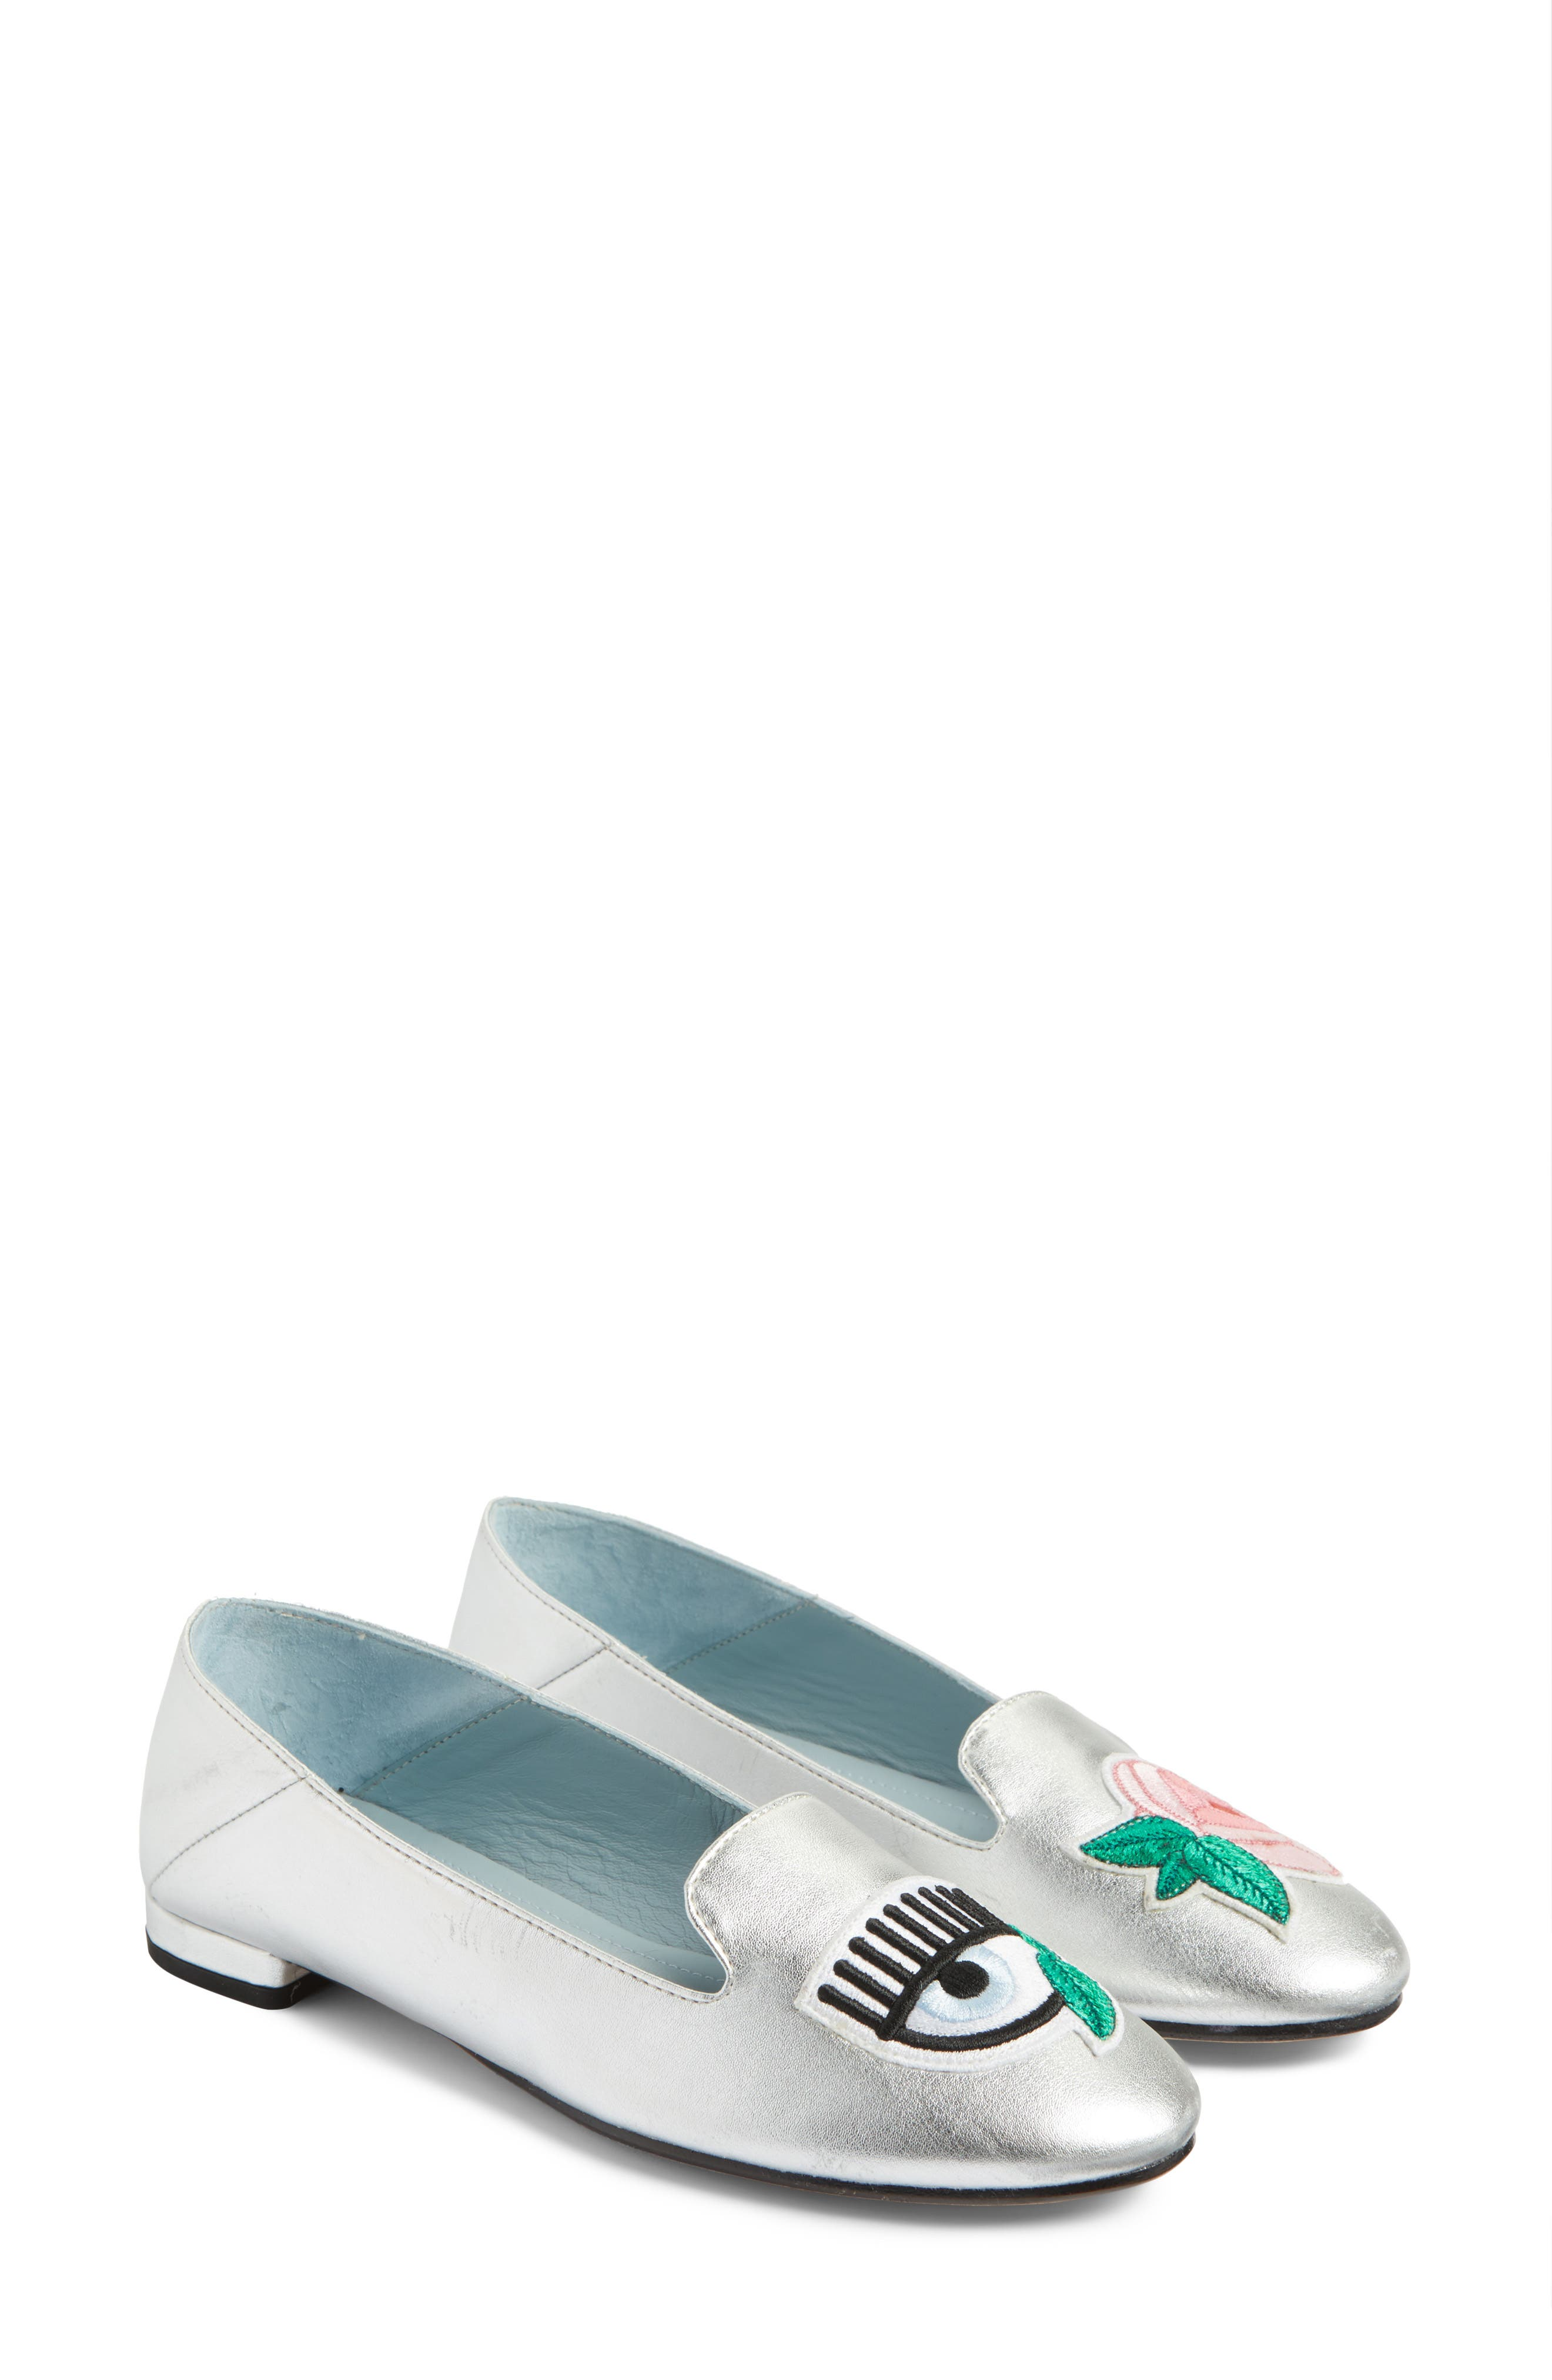 Flower Power Convertible Loafer Flat,                             Alternate thumbnail 2, color,                             Silver